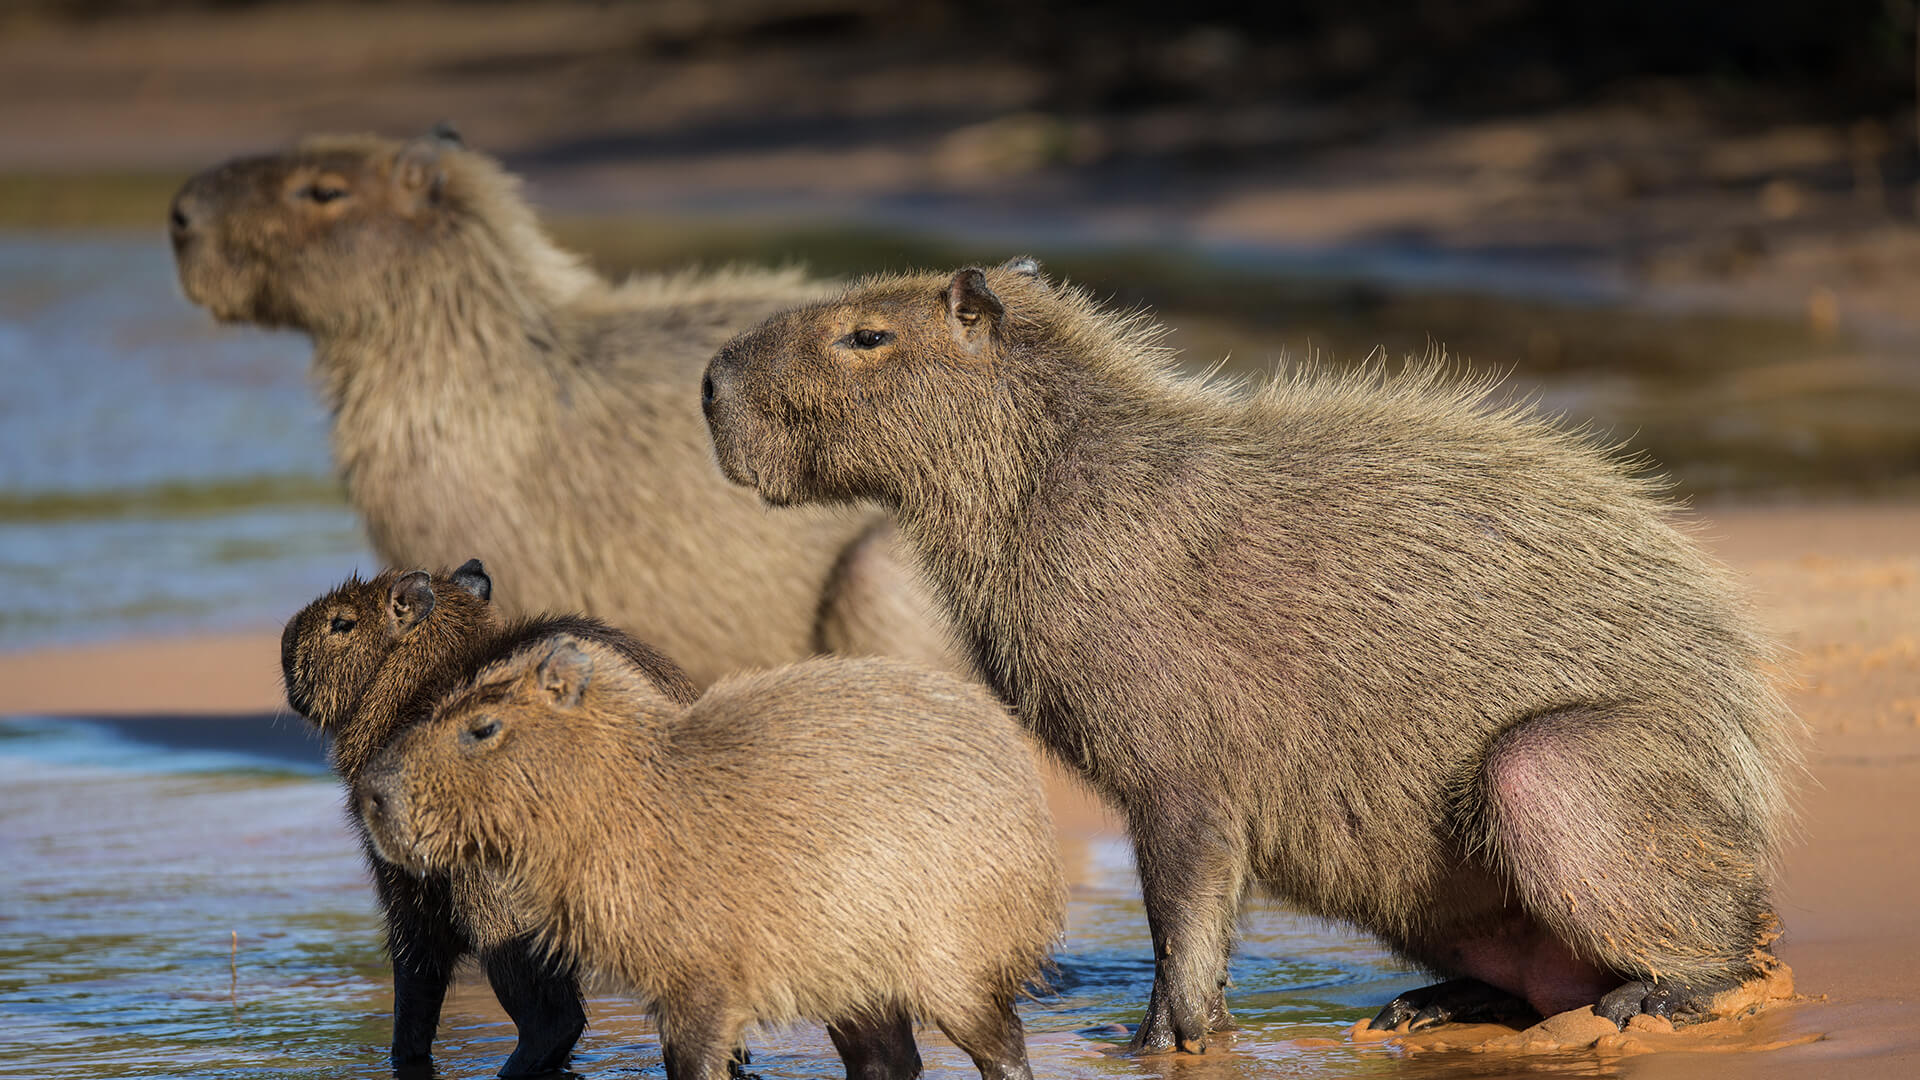 Group of Capybara on a river bank in Pantanal Brazil